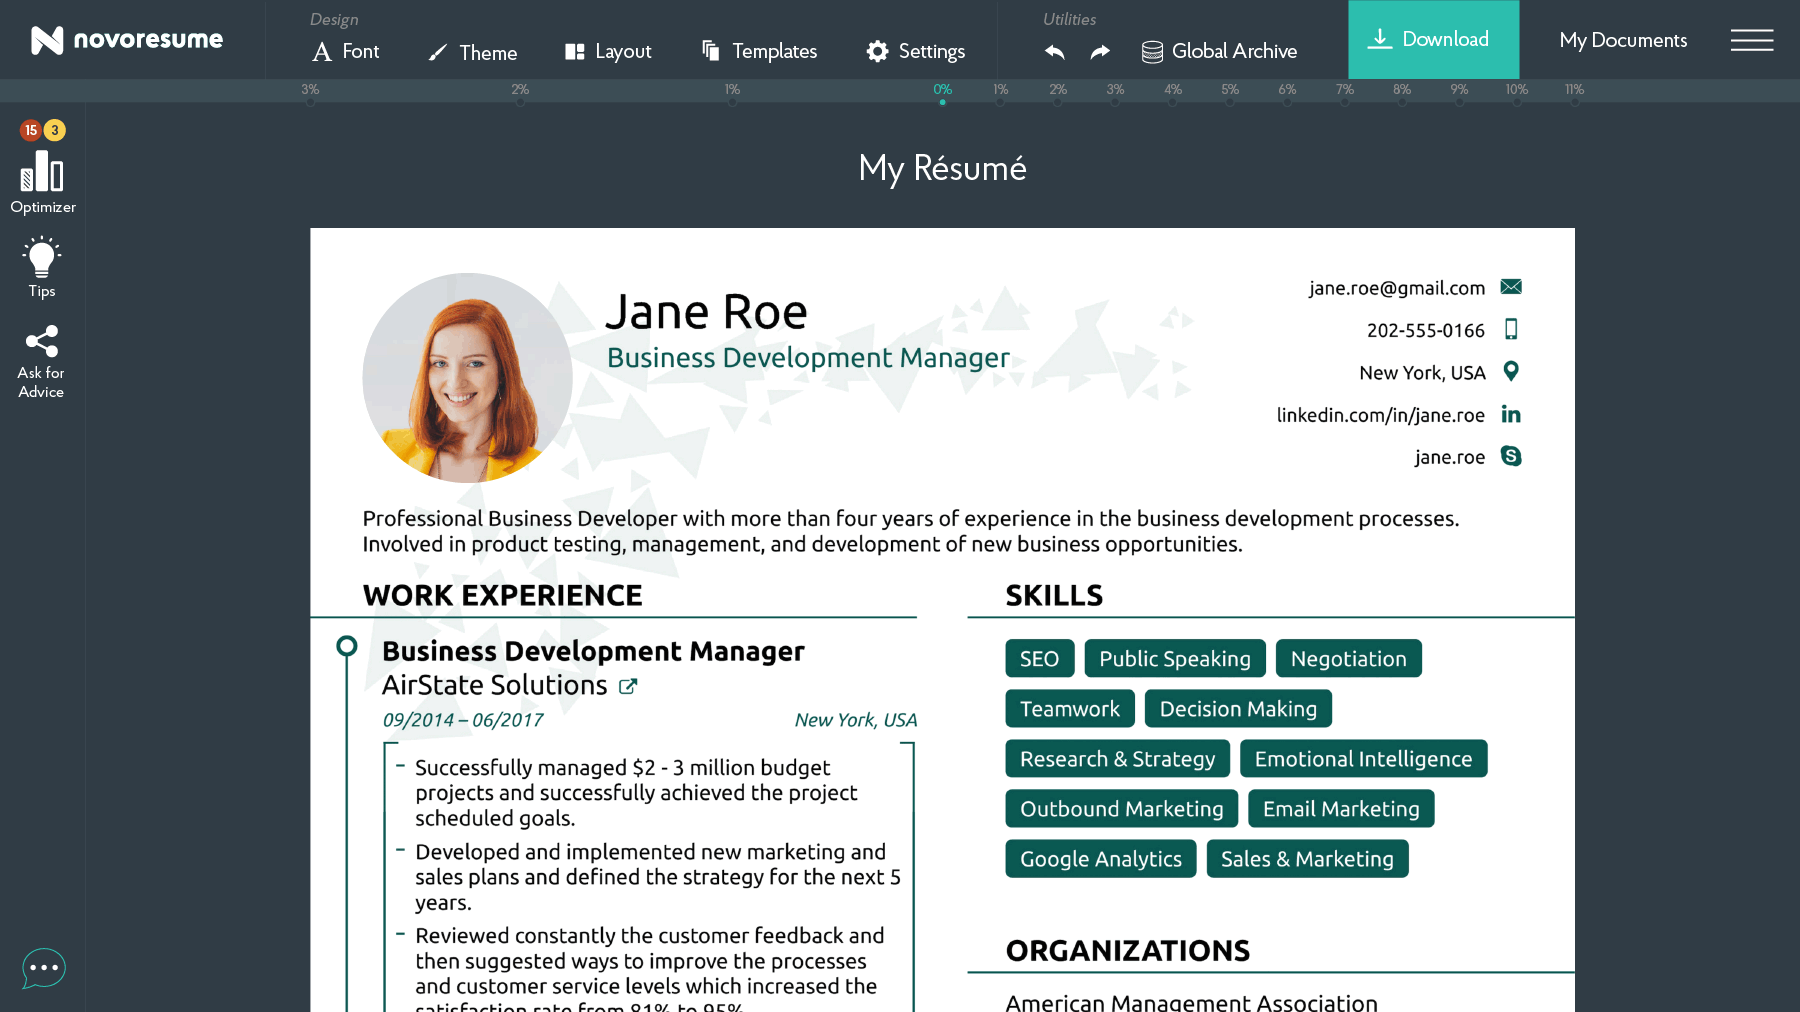 A professional resume builder showing a resume for a business development manager